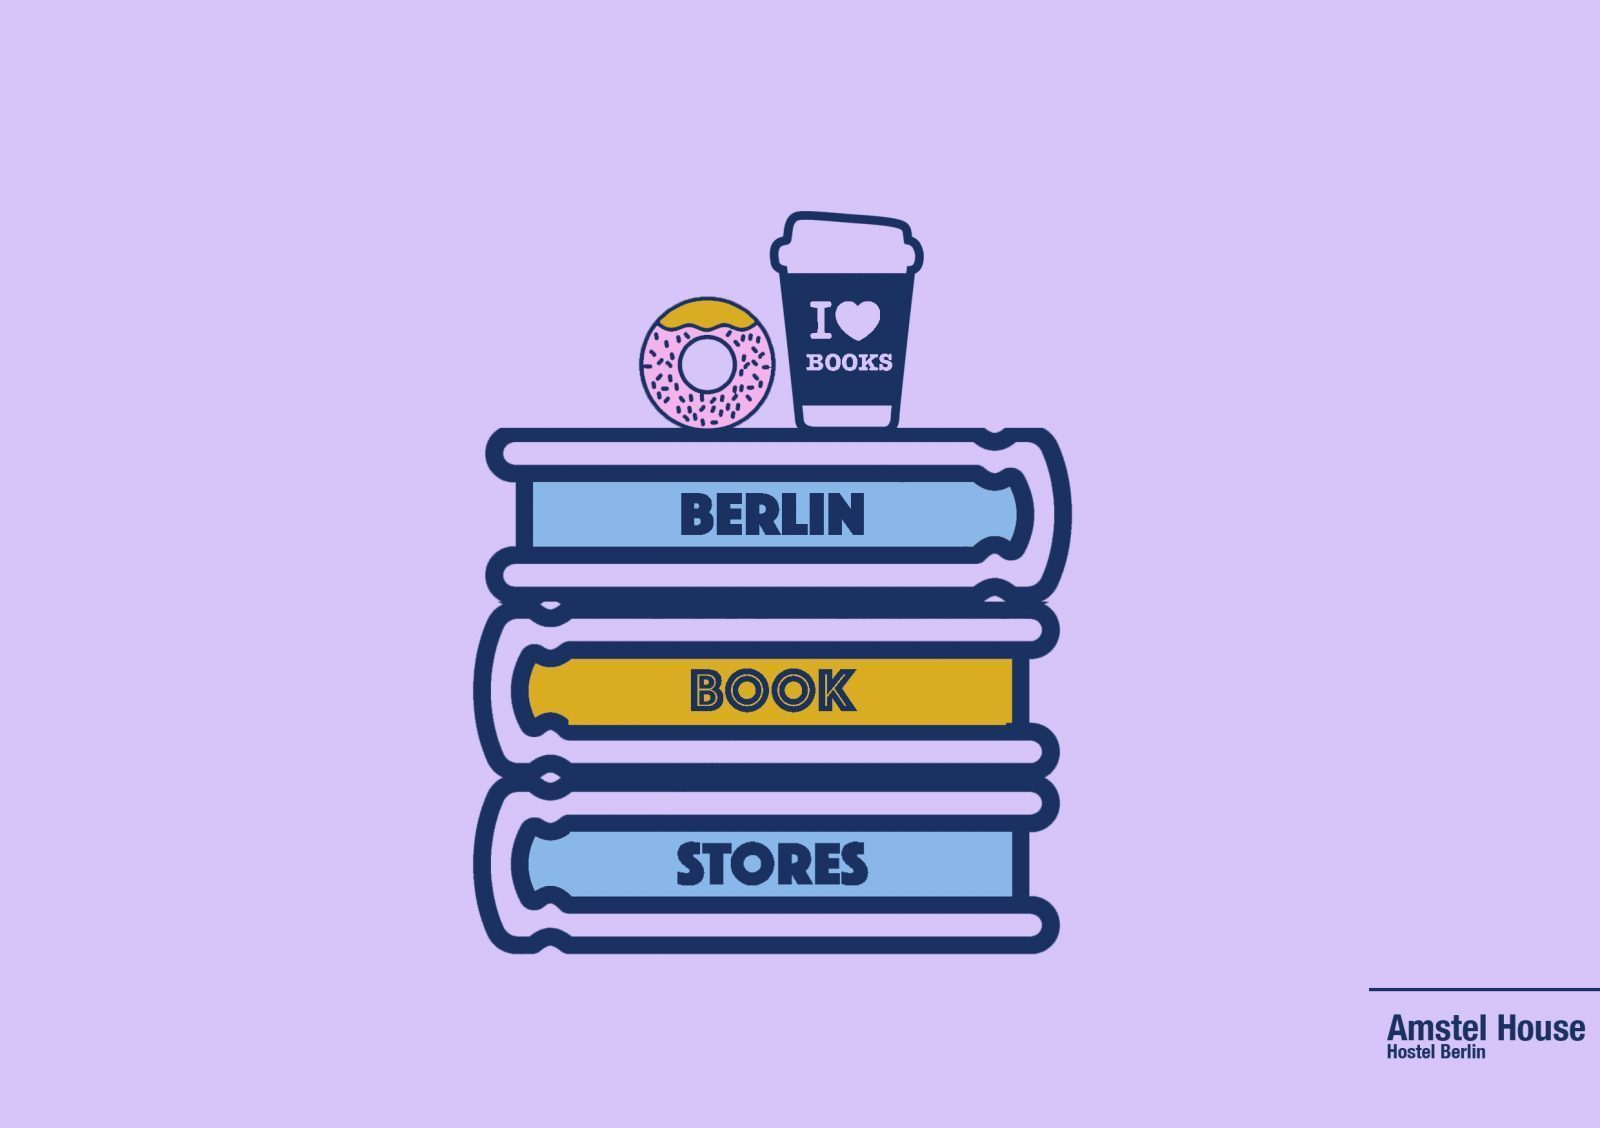 berlin bookshops